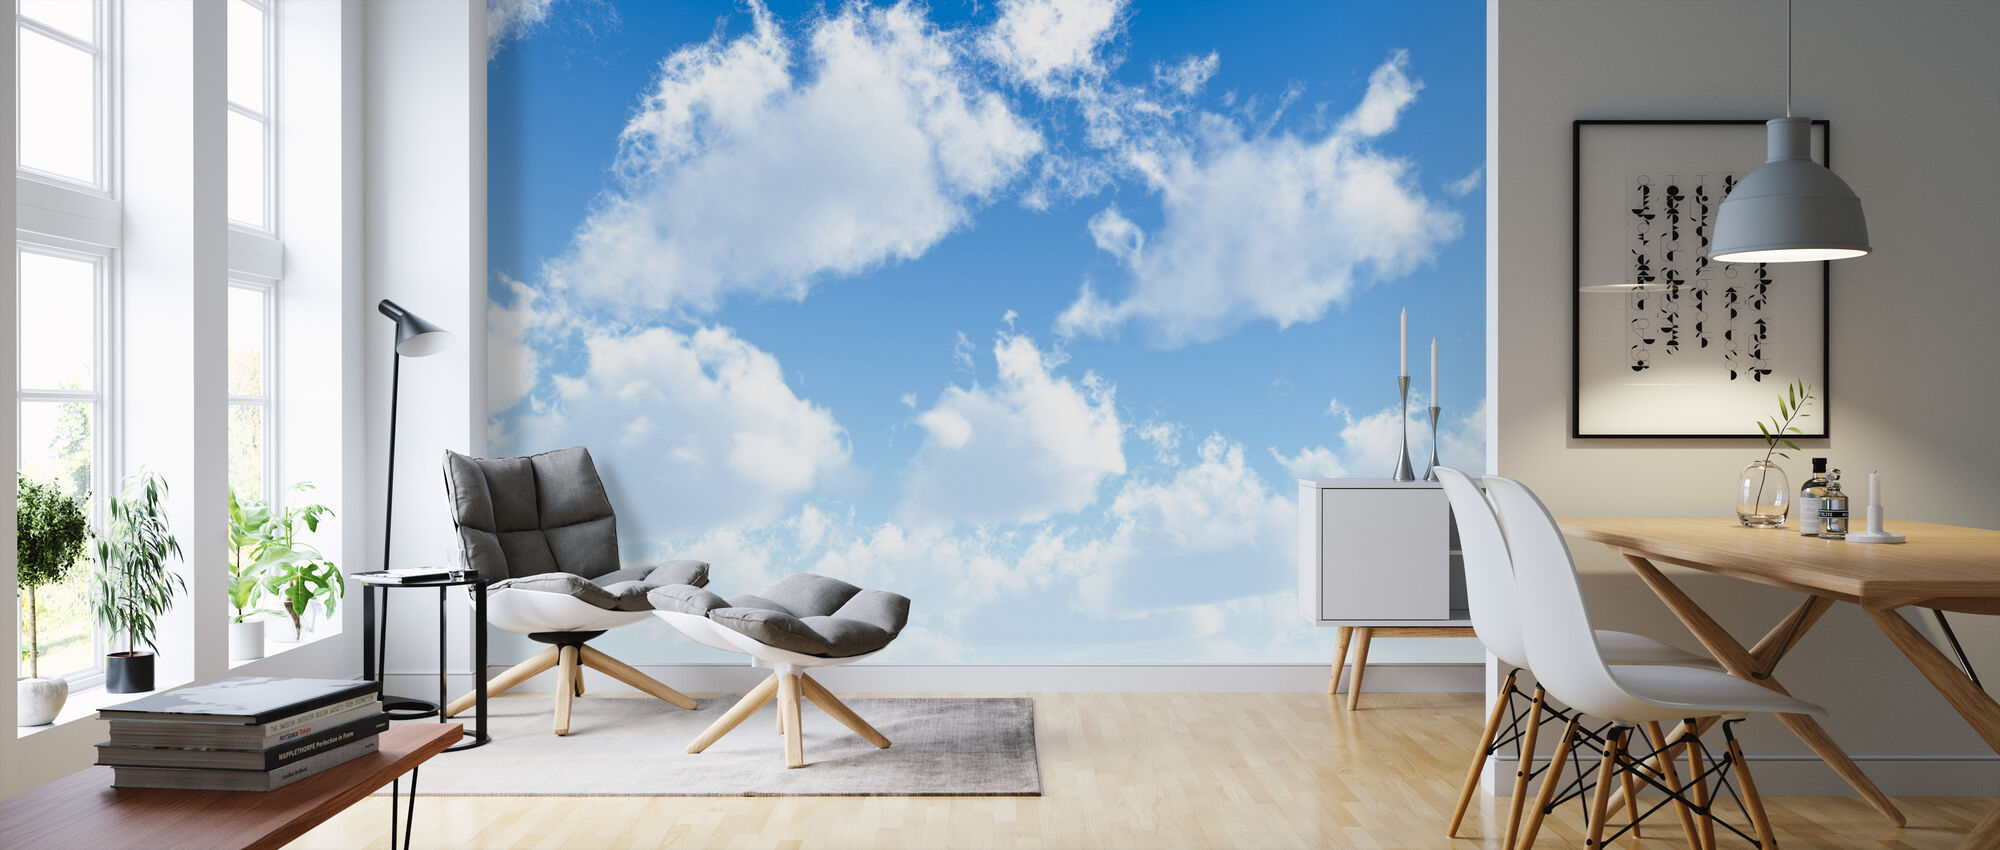 Fluffy Clouds - Wallpaper - Living Room